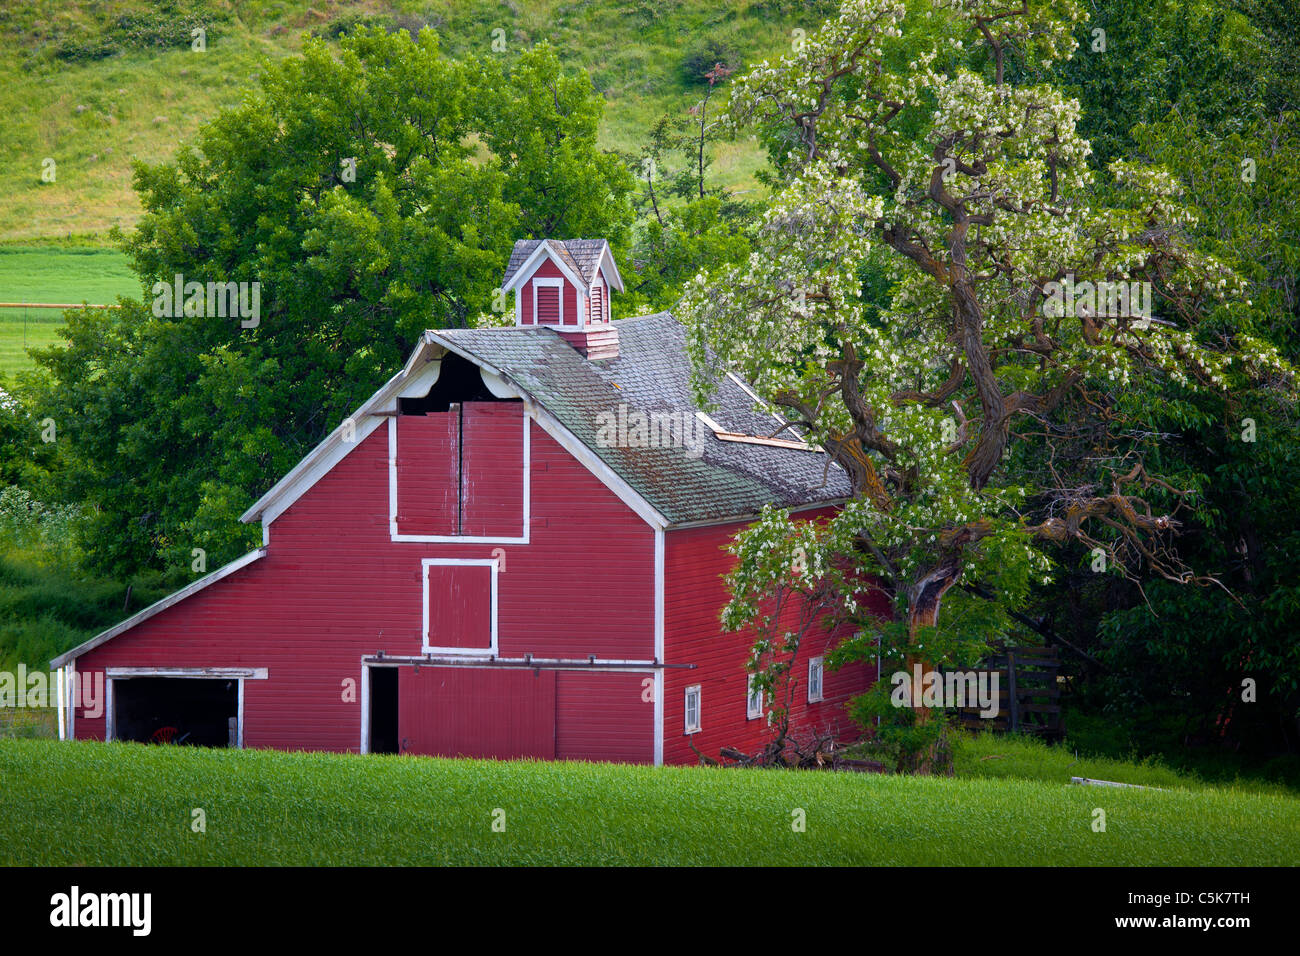 Barn building in the agricultural Palouse area of eastern Washington state - Stock Image